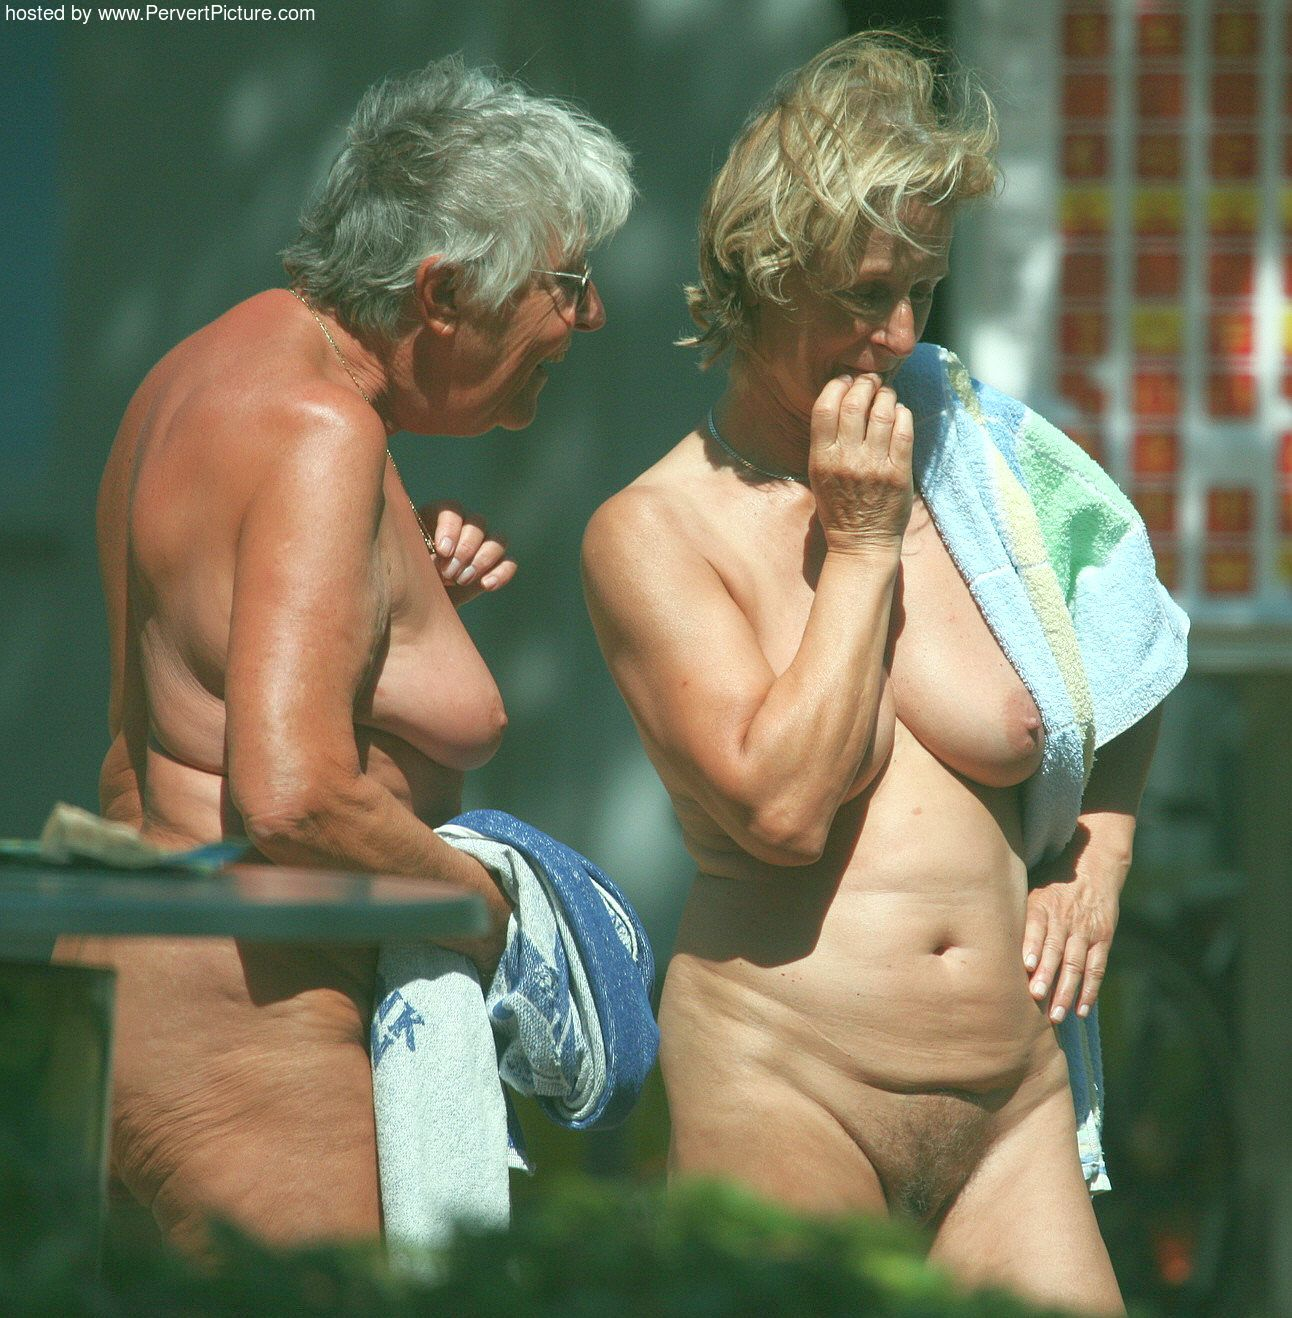 Grannies nudist watching but